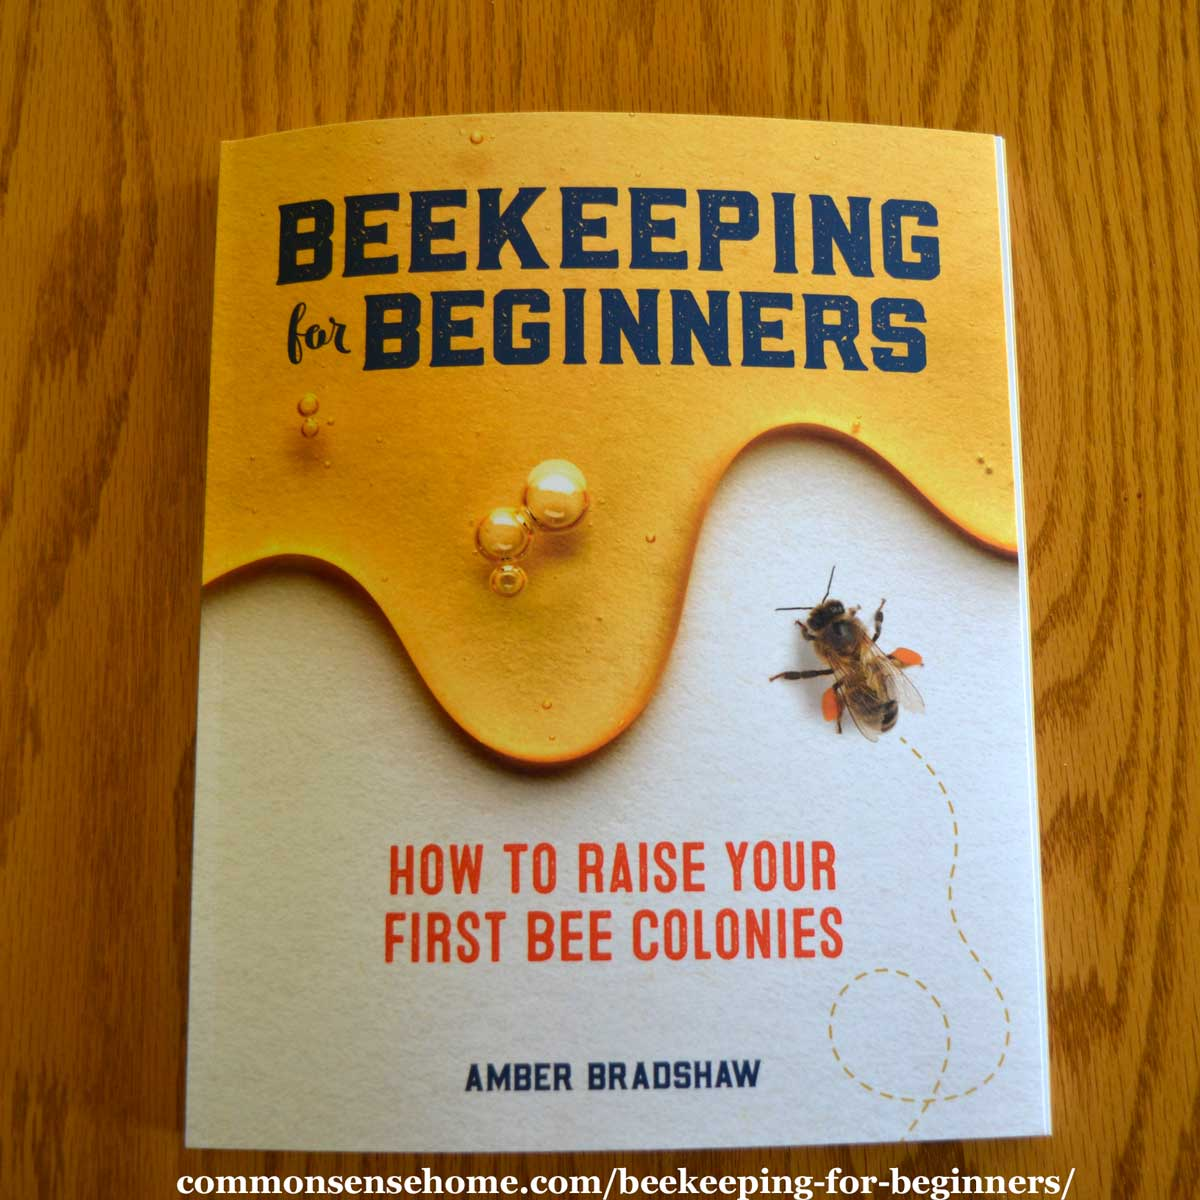 Beekeeping for Beginners guide book